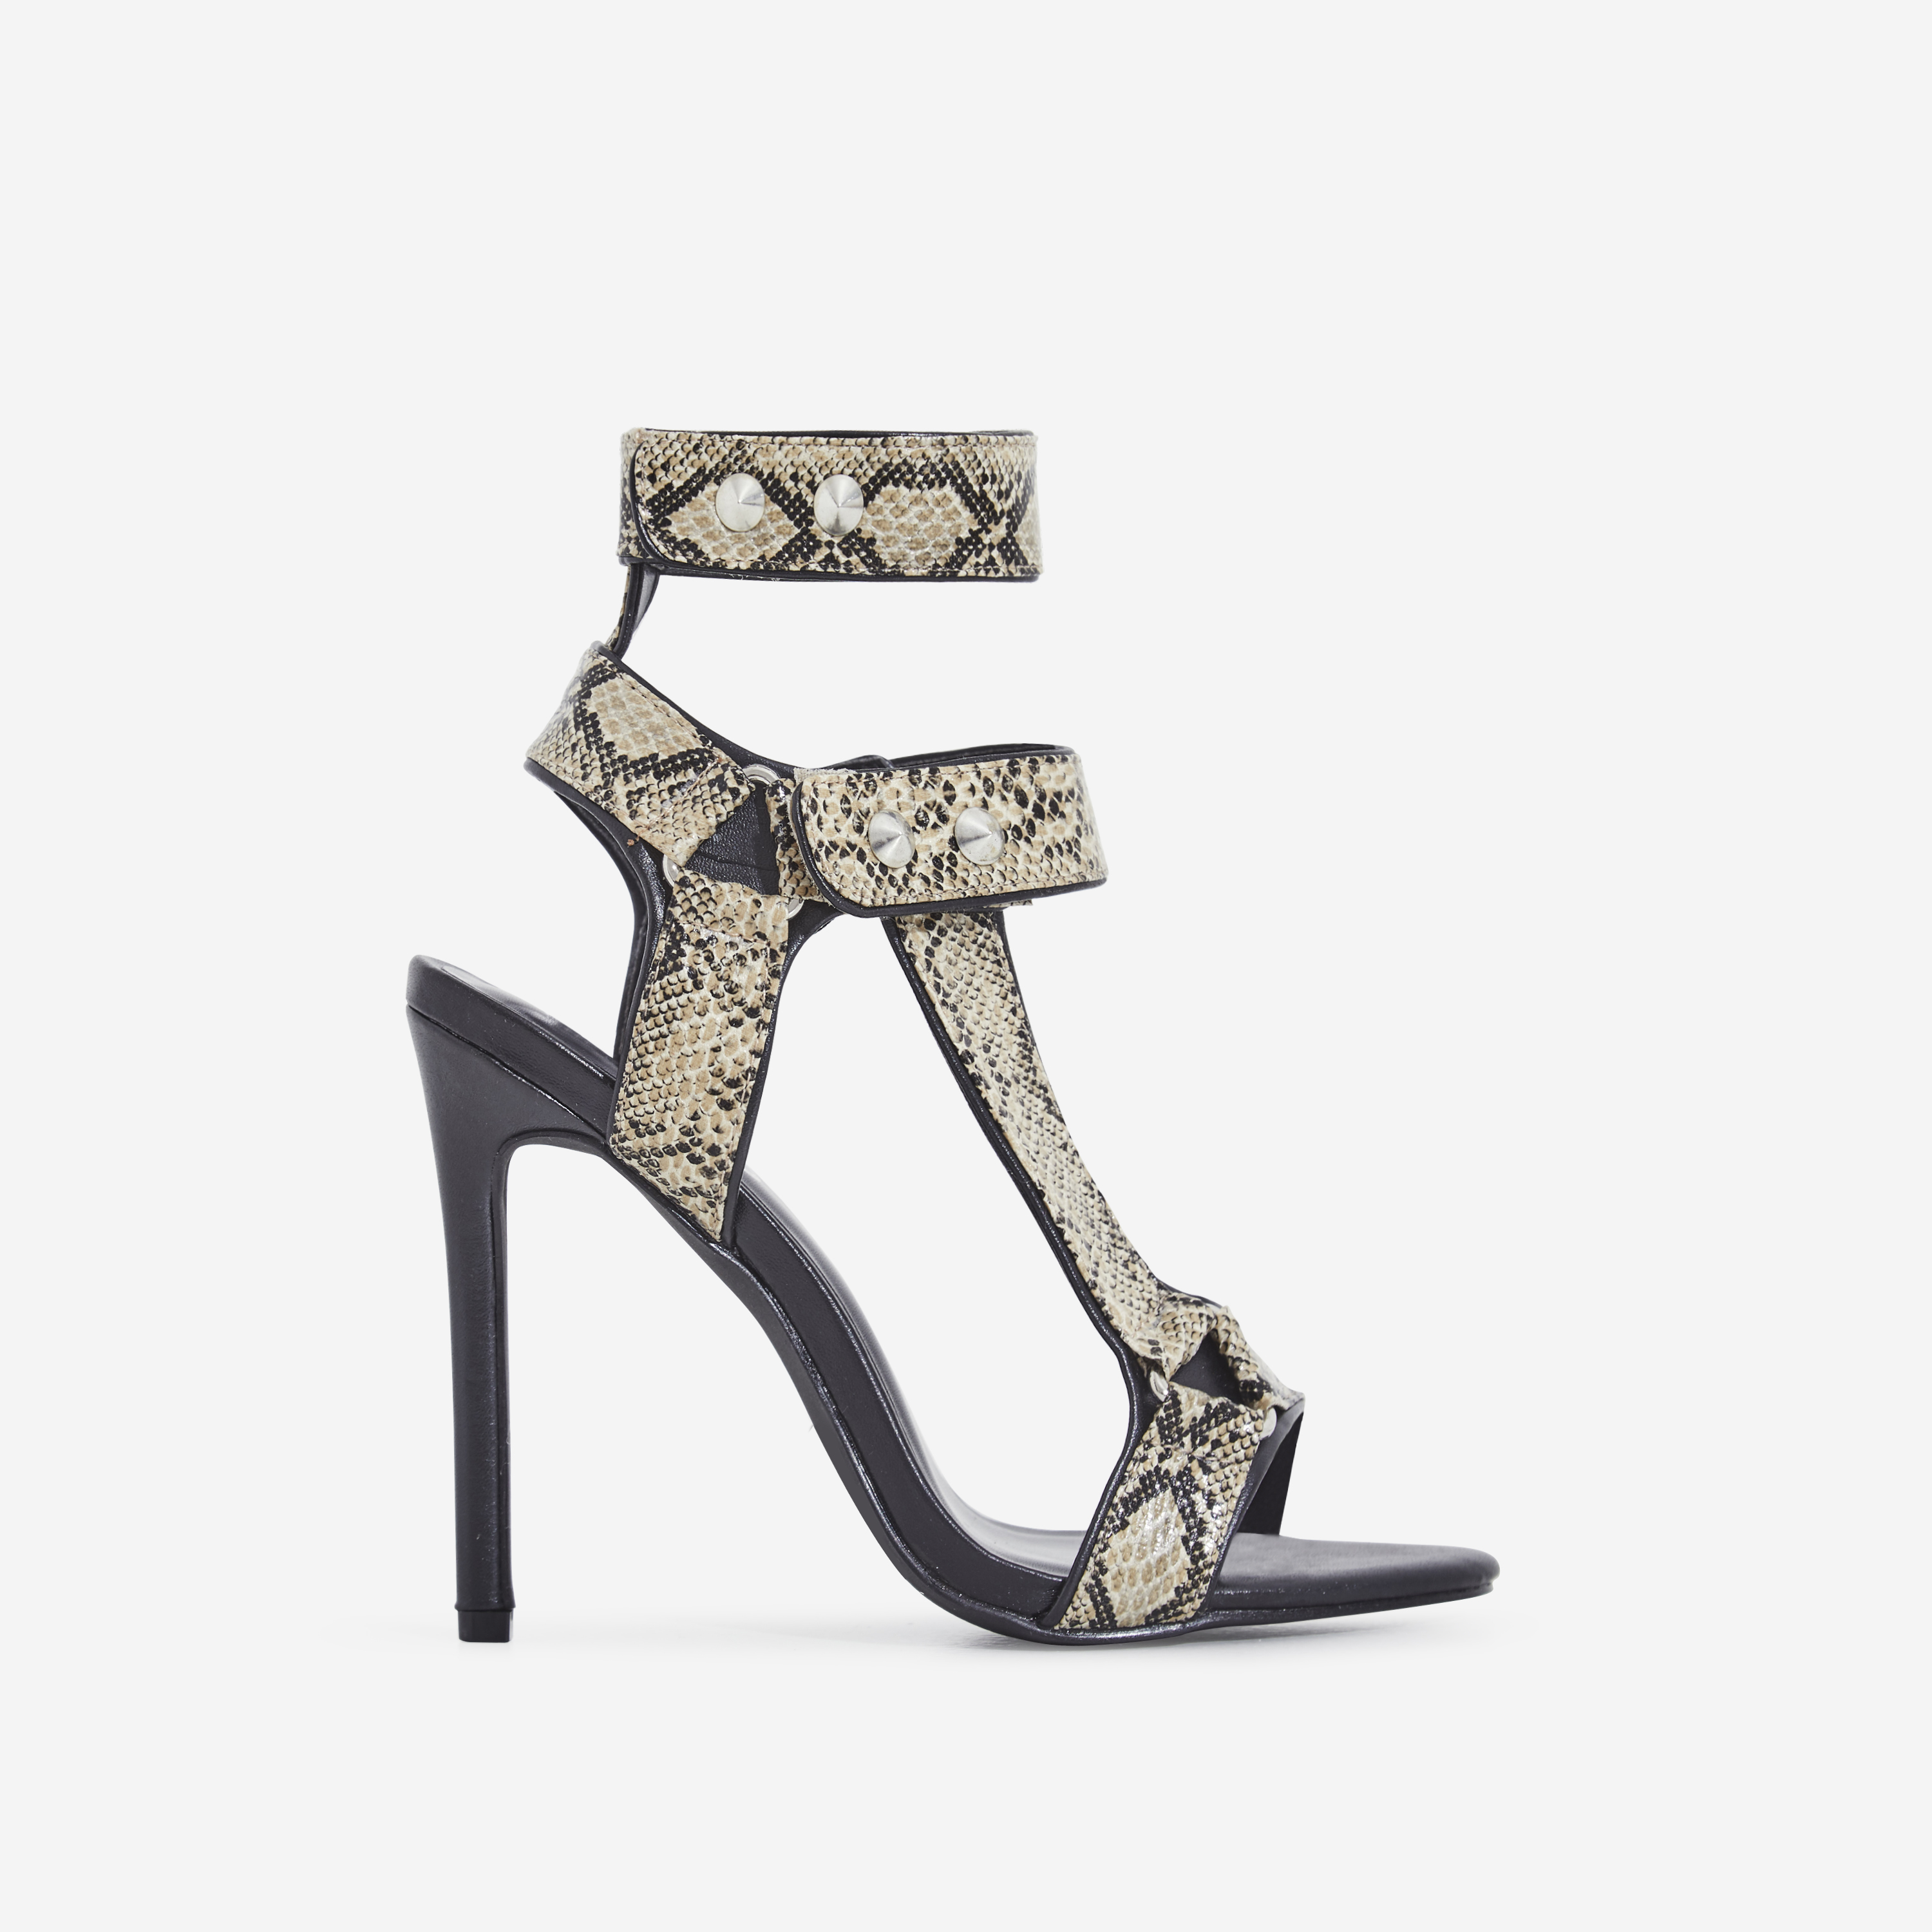 Alexis Cage Heel In Nude Snake Print Faux Leather